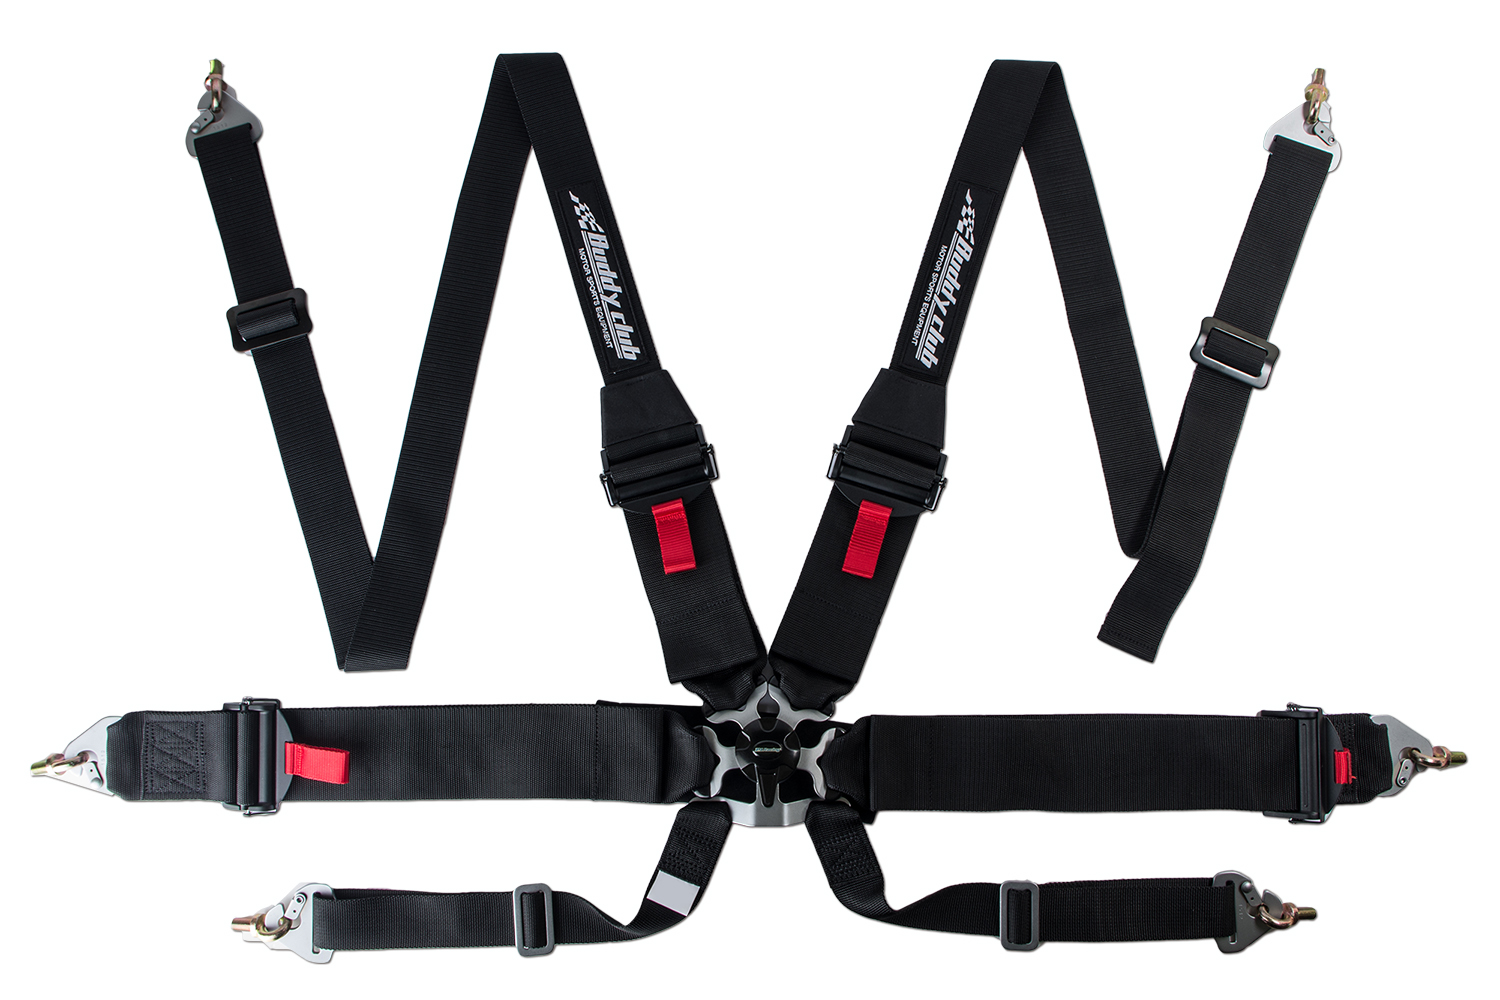 P-1 RACING HARNESS